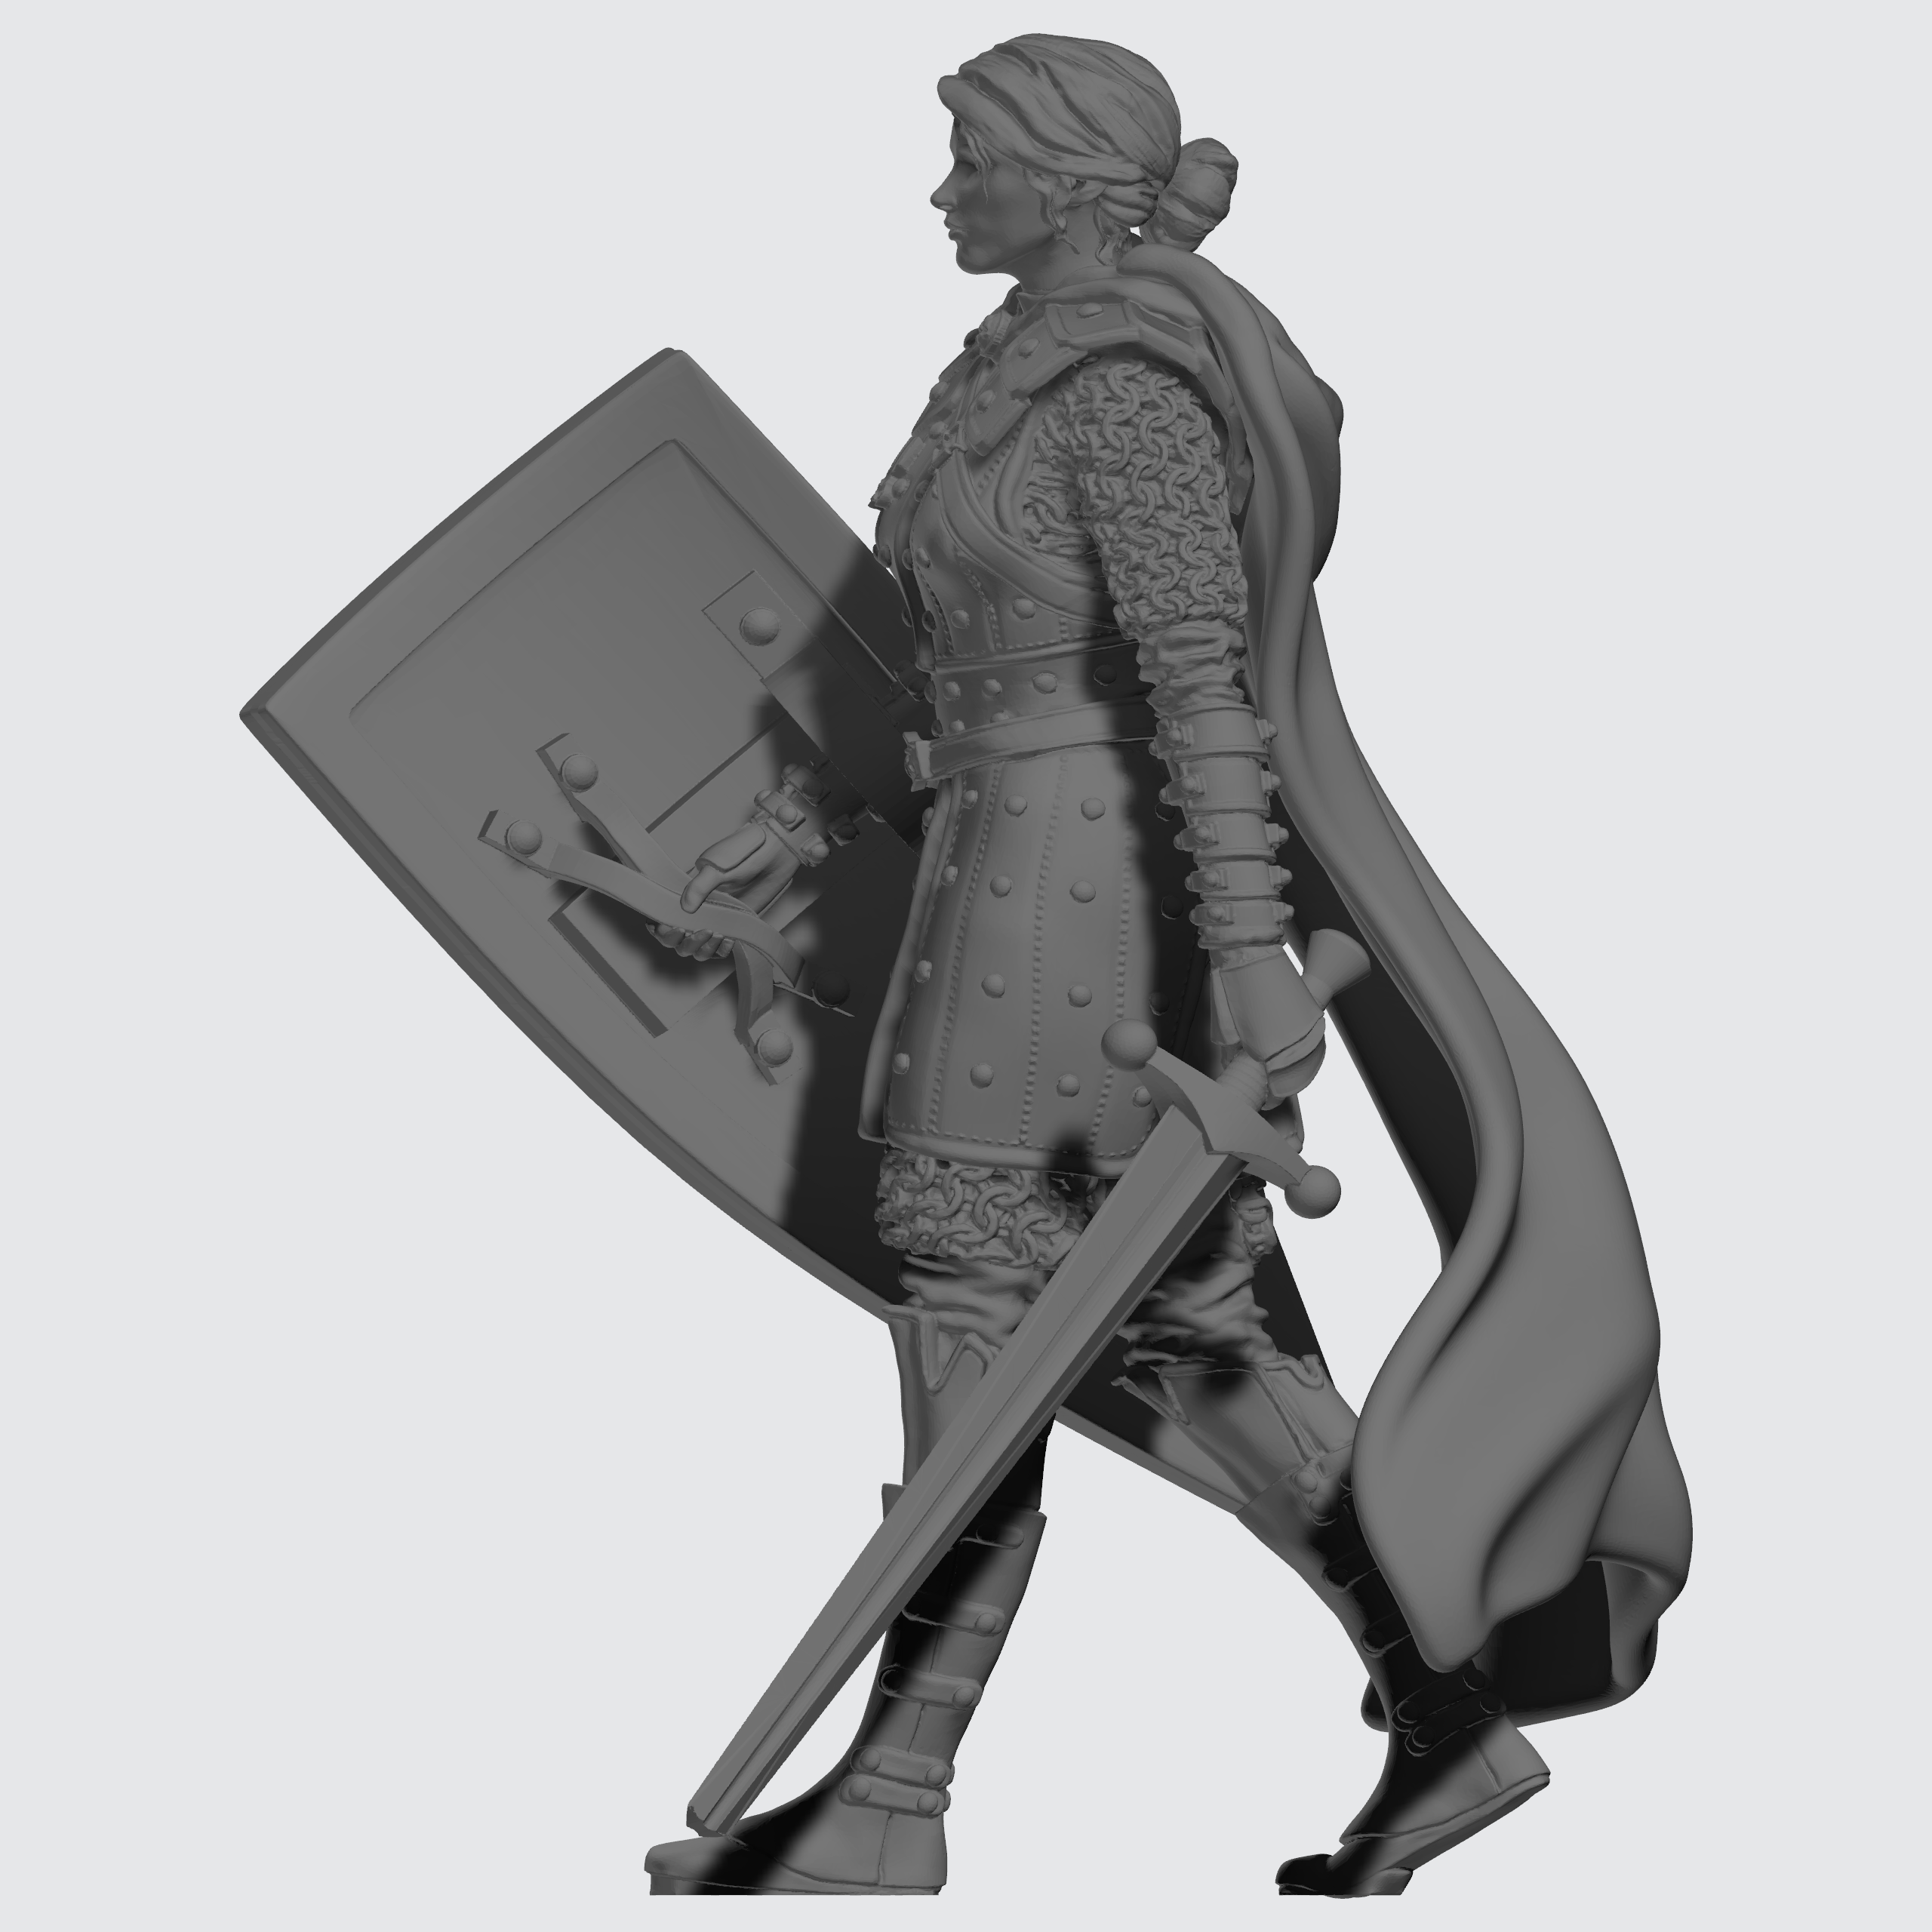 Kingdom of Celesia Individual Unit - Praetorian Pilot - Female Sculpt